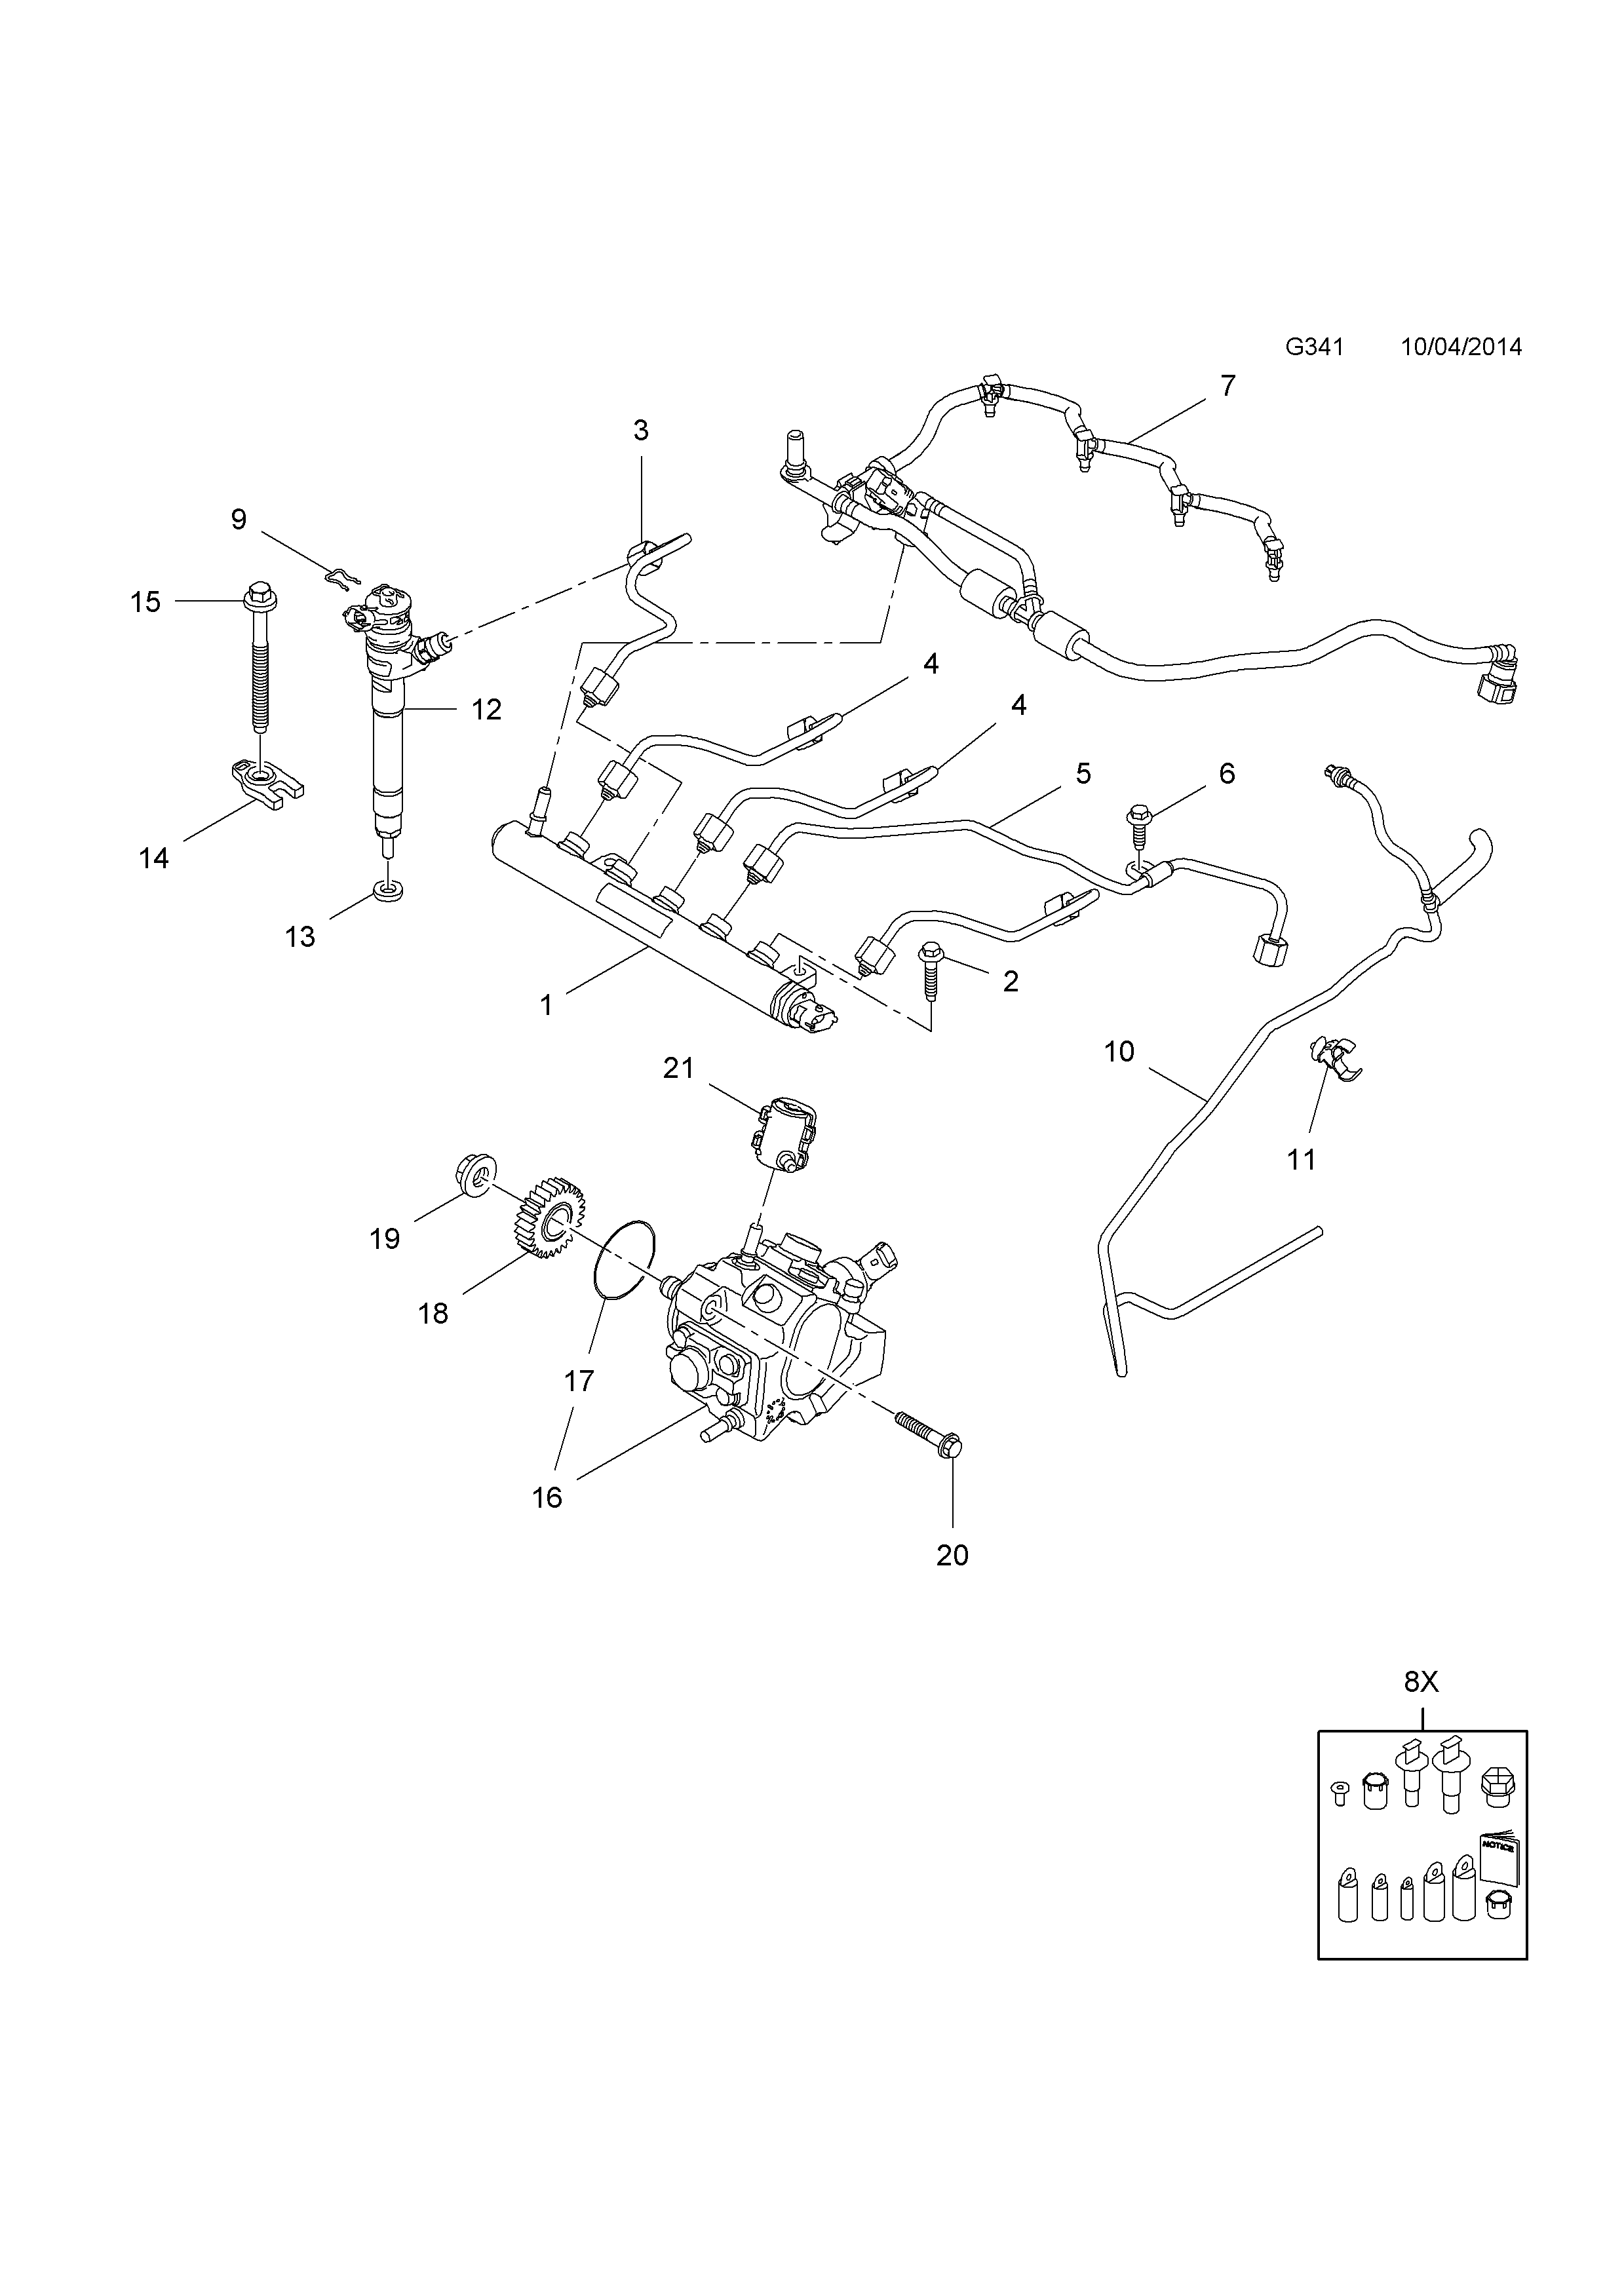 7 3 injector diagram wiring diagram database 1995 Ford 7.3 Diesel Fuel System Diagram 7 3 injector diagram best wiring library 7 3 injector diagram head 7 3 idi engine diagram